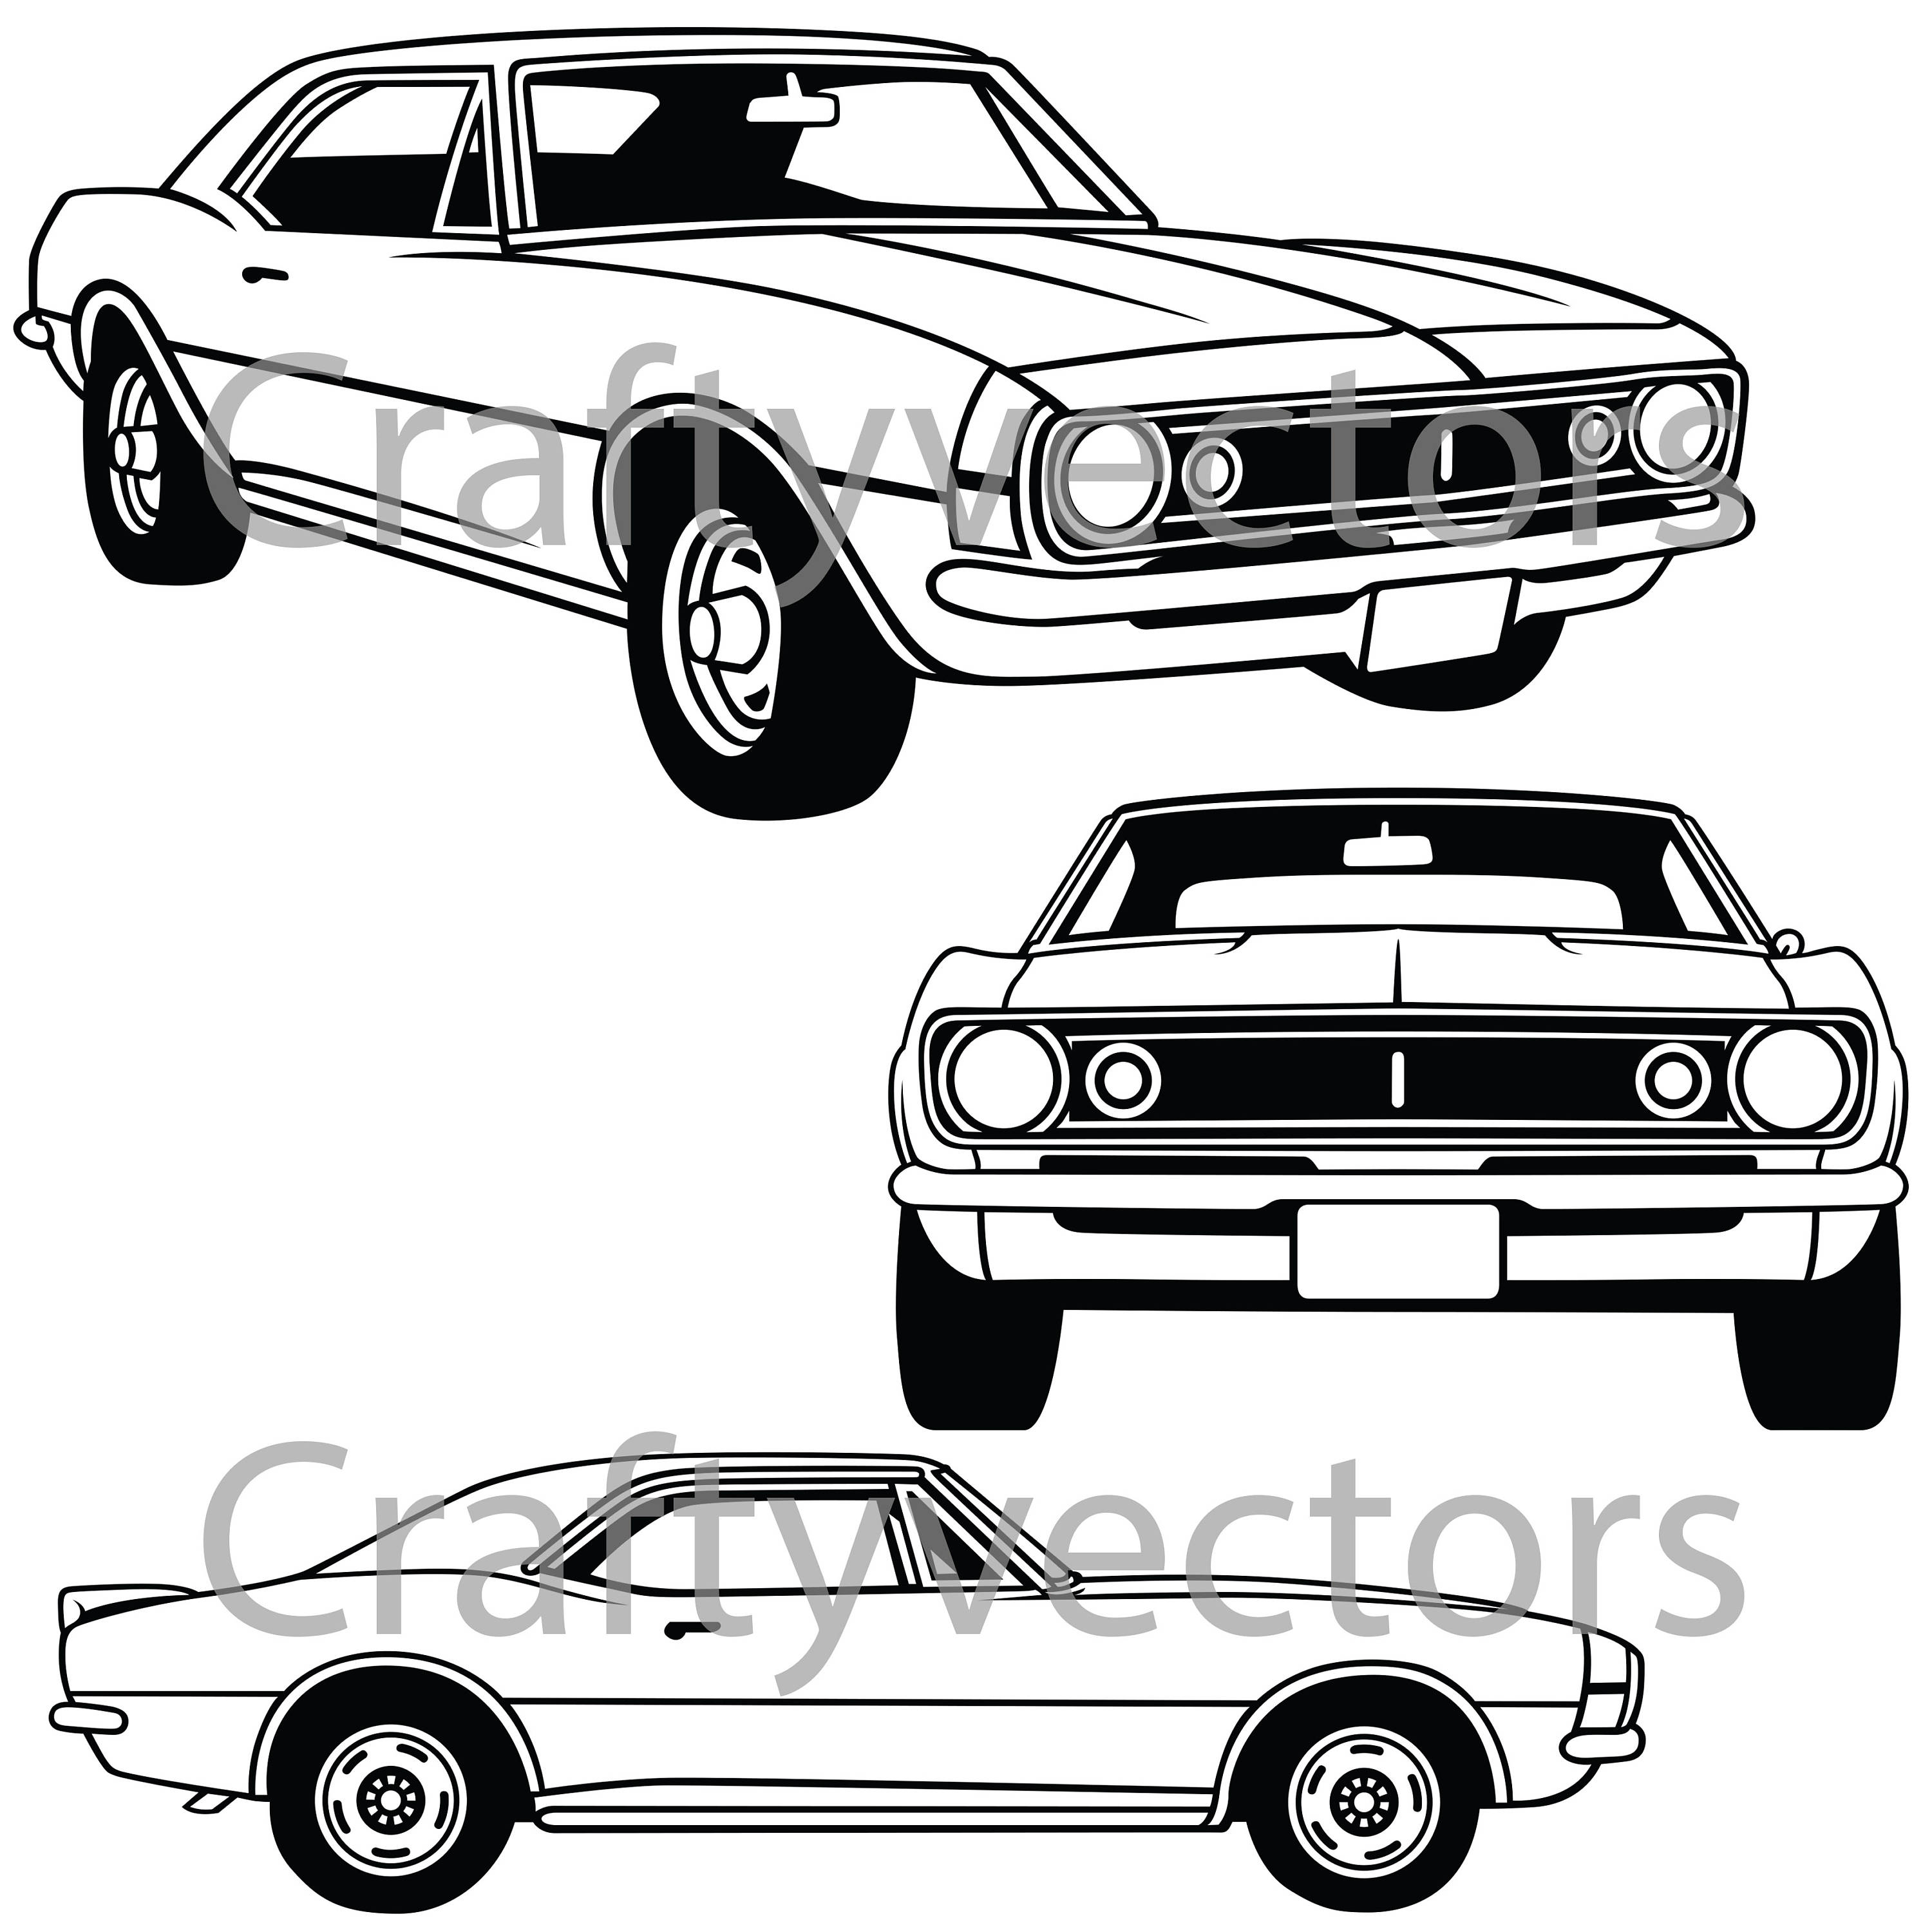 68 Camaro Drawing At Free For Personal Use 1966 Chevrolet Ss 3000x3000 Vector File